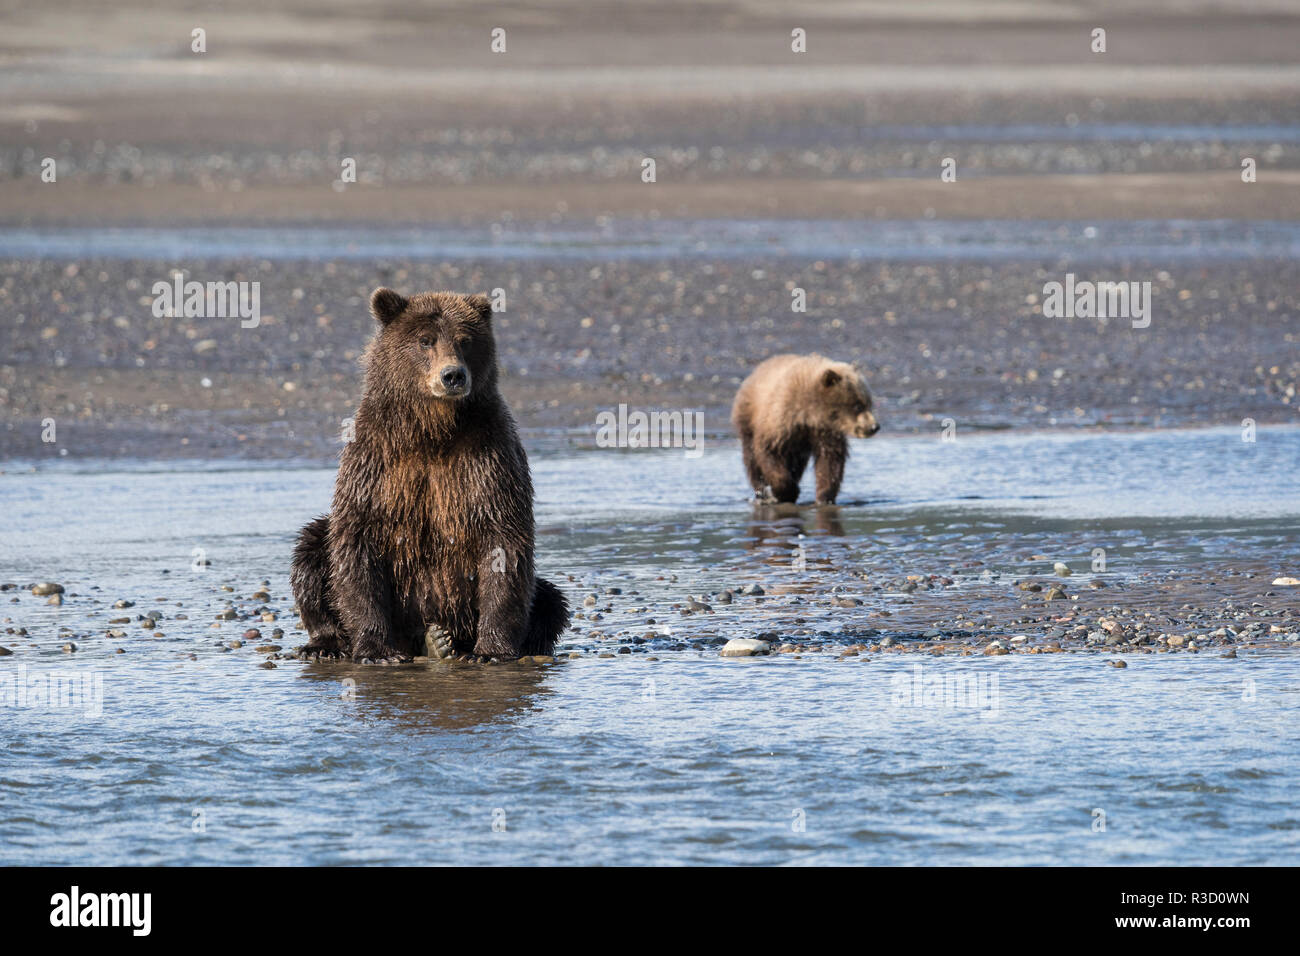 A brown bear (Ursus Arctos) and her cub watch for fish along the river in Lake Clark National Park, Alaska. - Stock Image